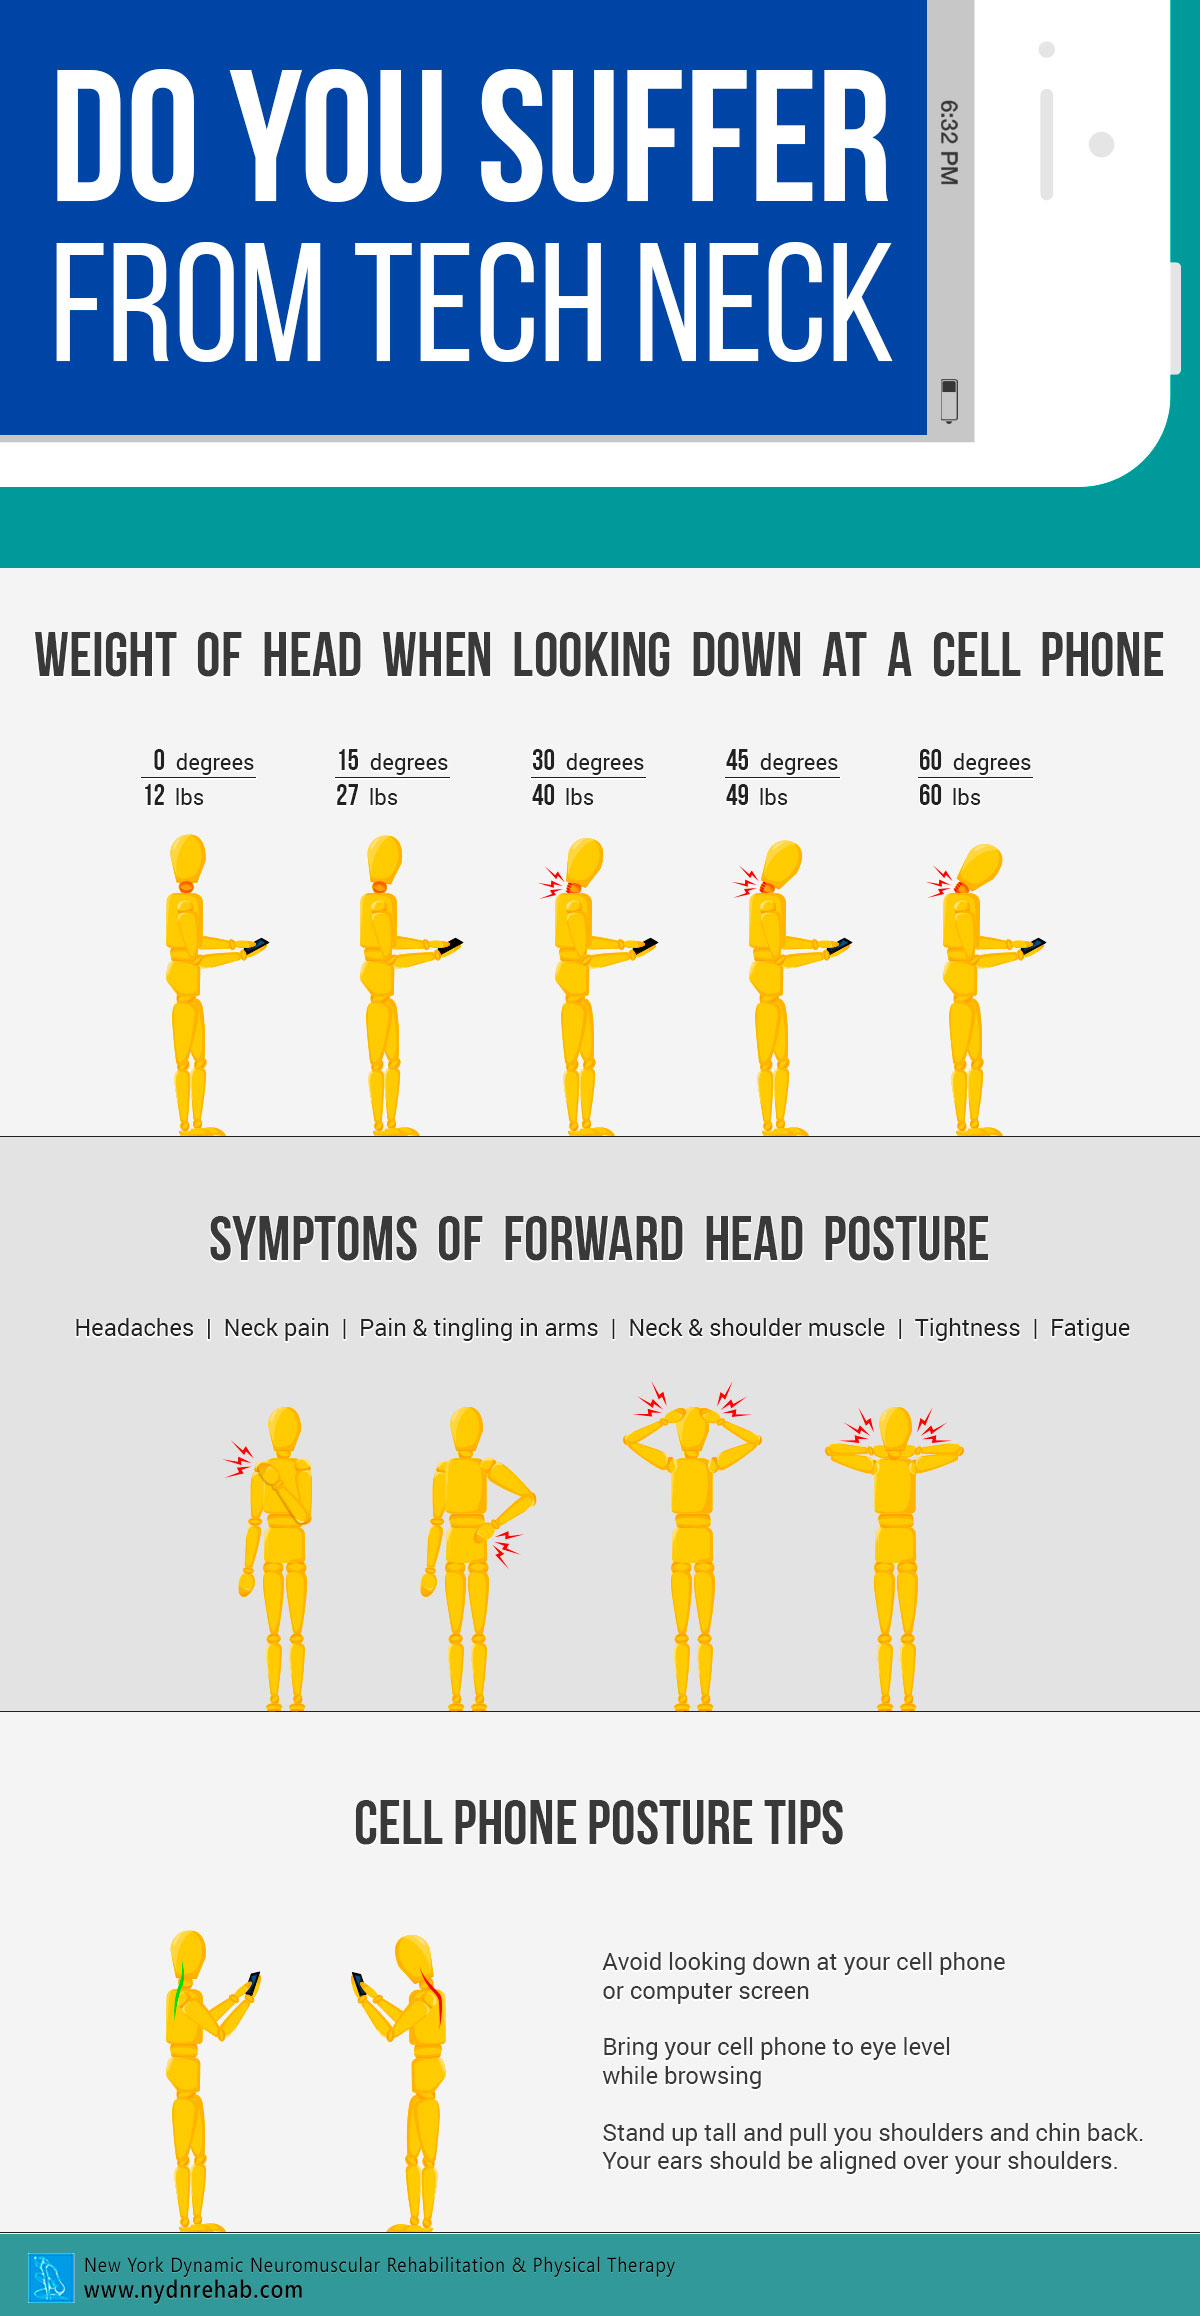 Do-You-Suffer-from-Tech-Neck-infographic-plaza